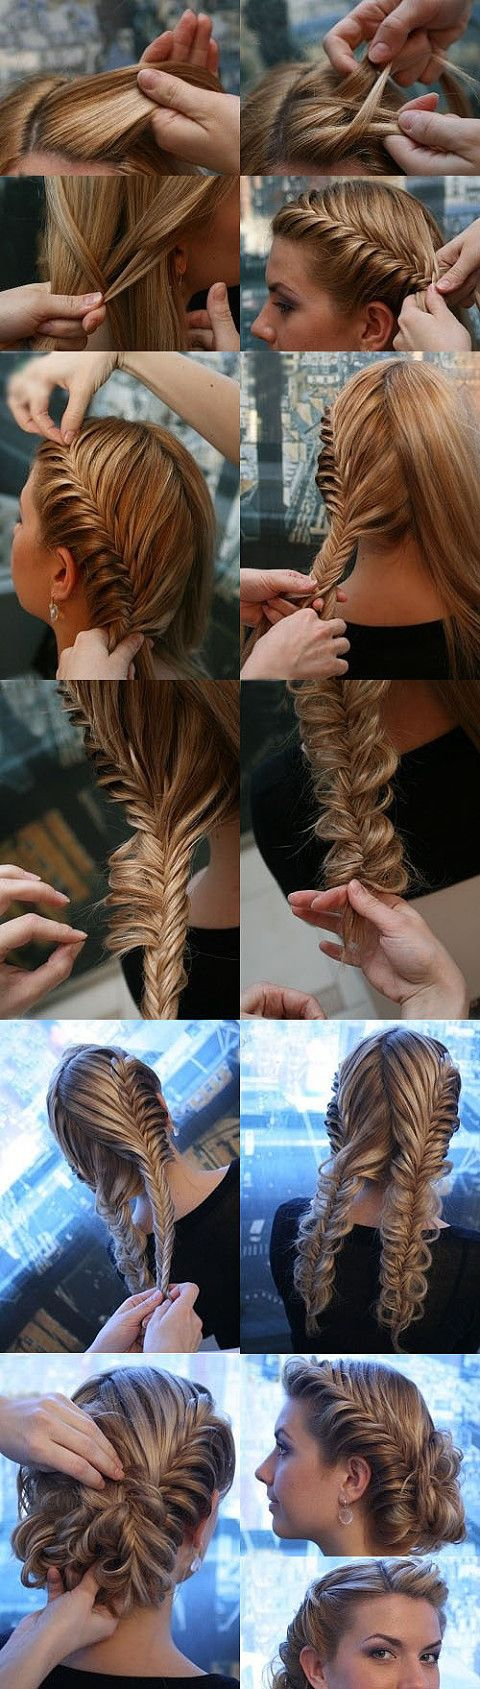 Different braided hair